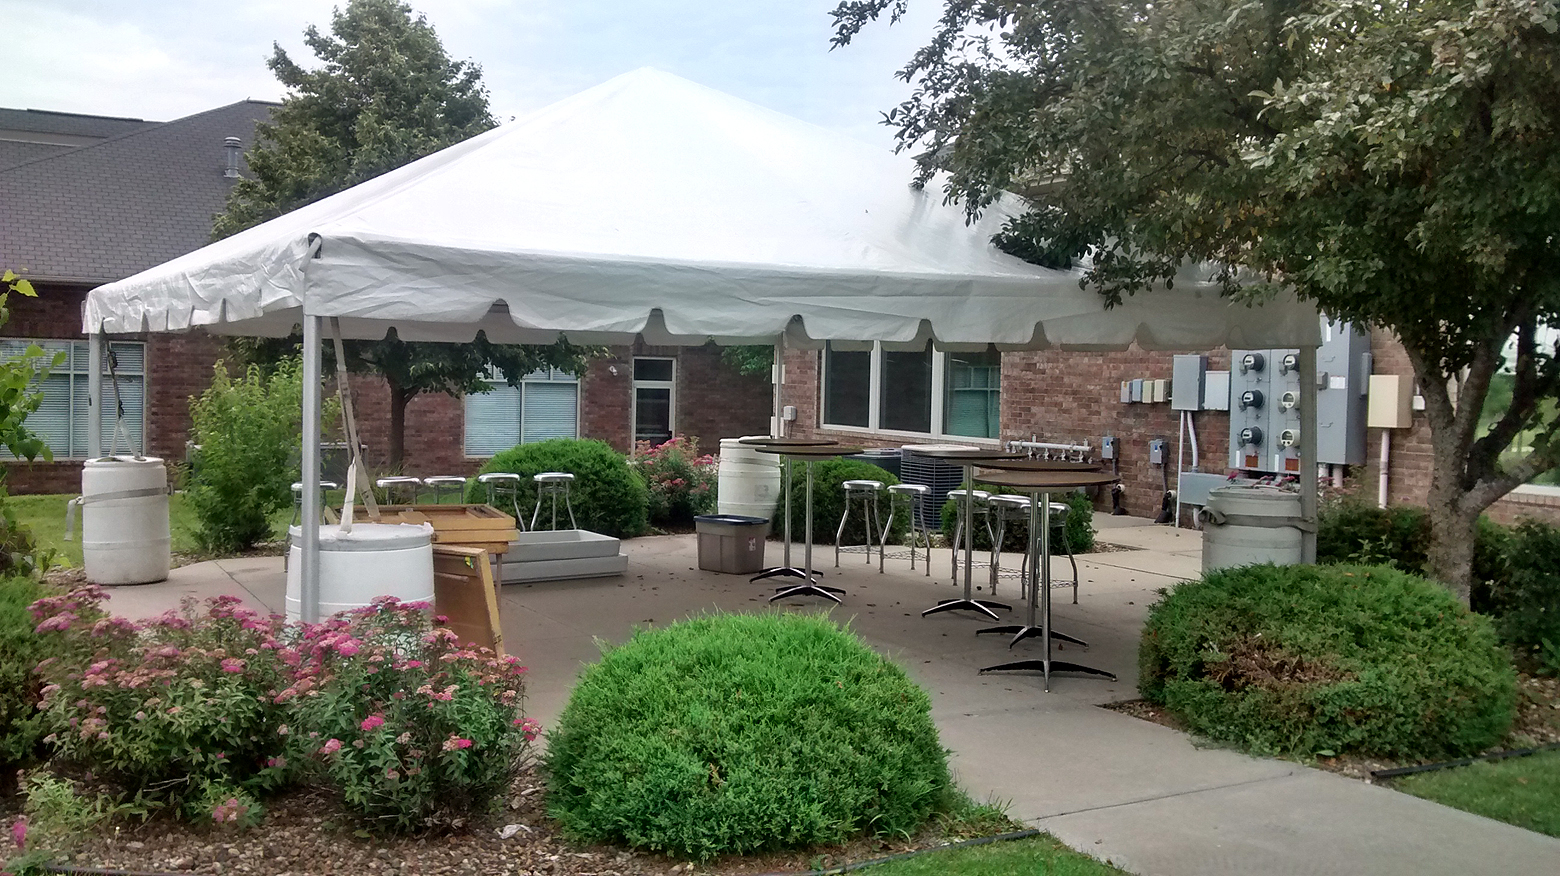 Rent 20' x 20' frame party & event tent/temporary structure Iowa